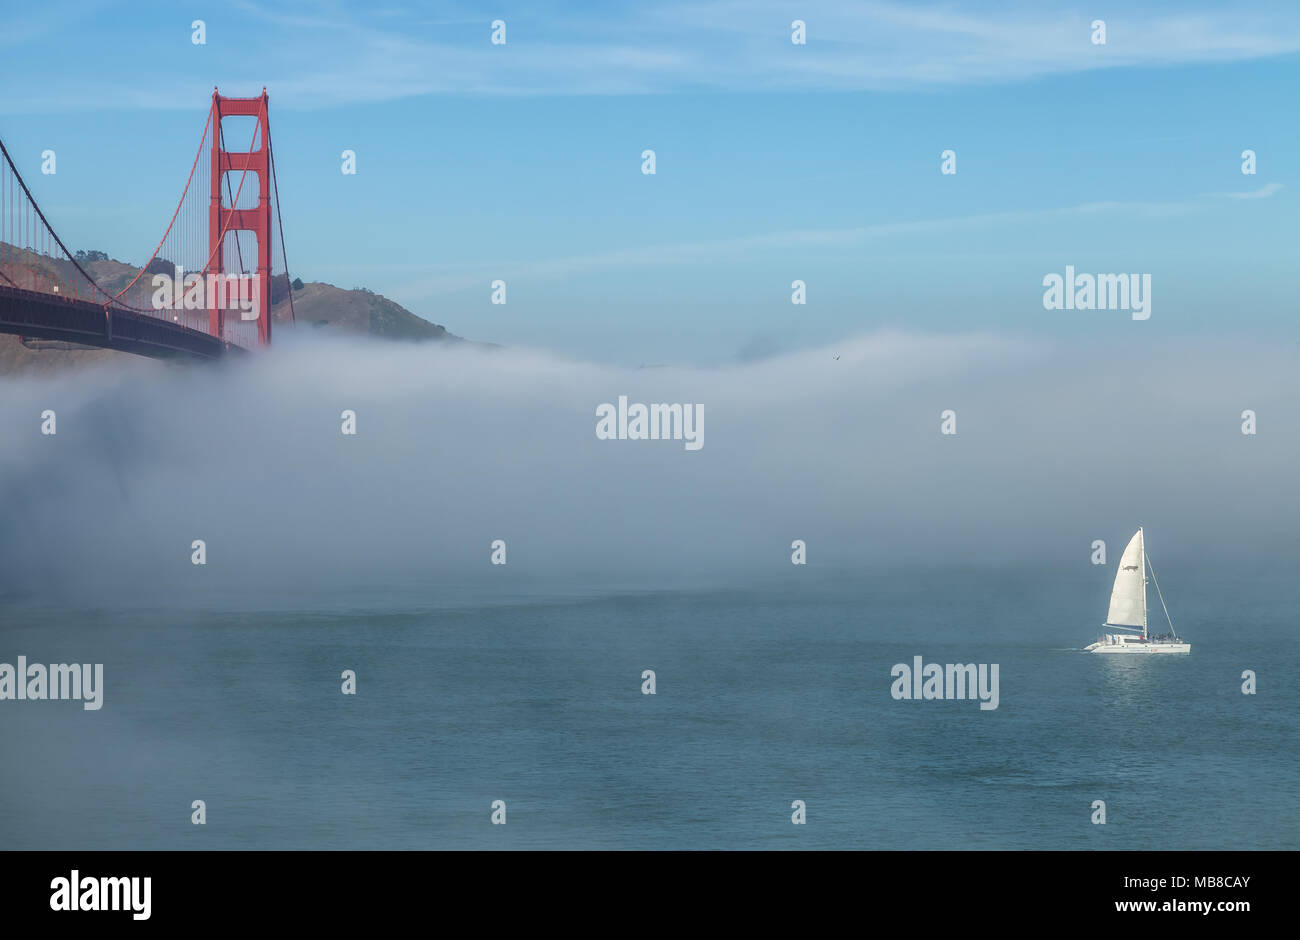 Fog formed under the Golden Gate Bridge and the San Francisco Bay, California, United States, on an early spring morning. - Stock Image